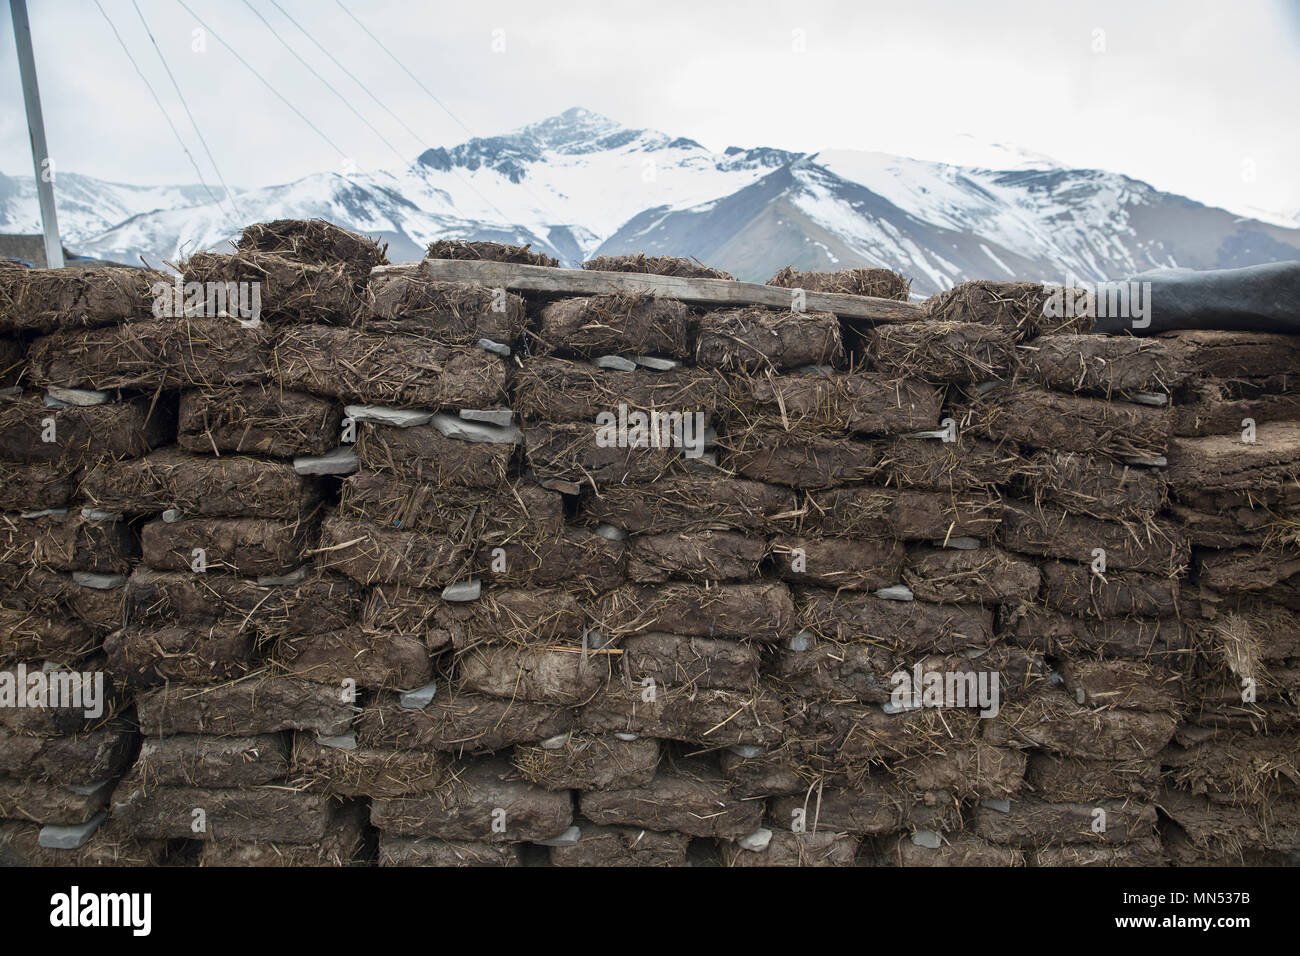 Bricks for heating of premises from manure and hay - Stock Image